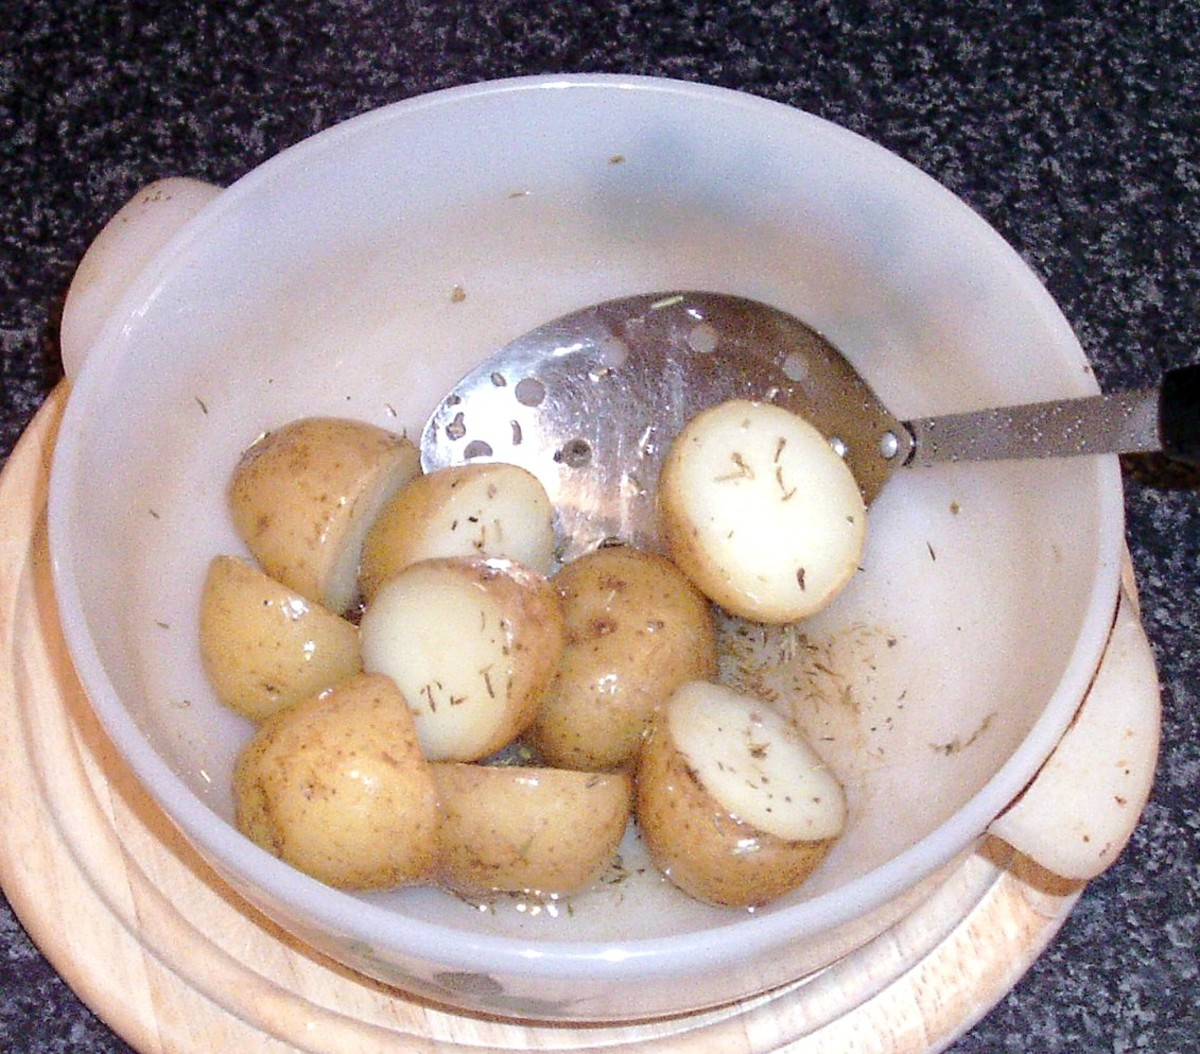 Potatoes and dried herbs are turned in hot oil